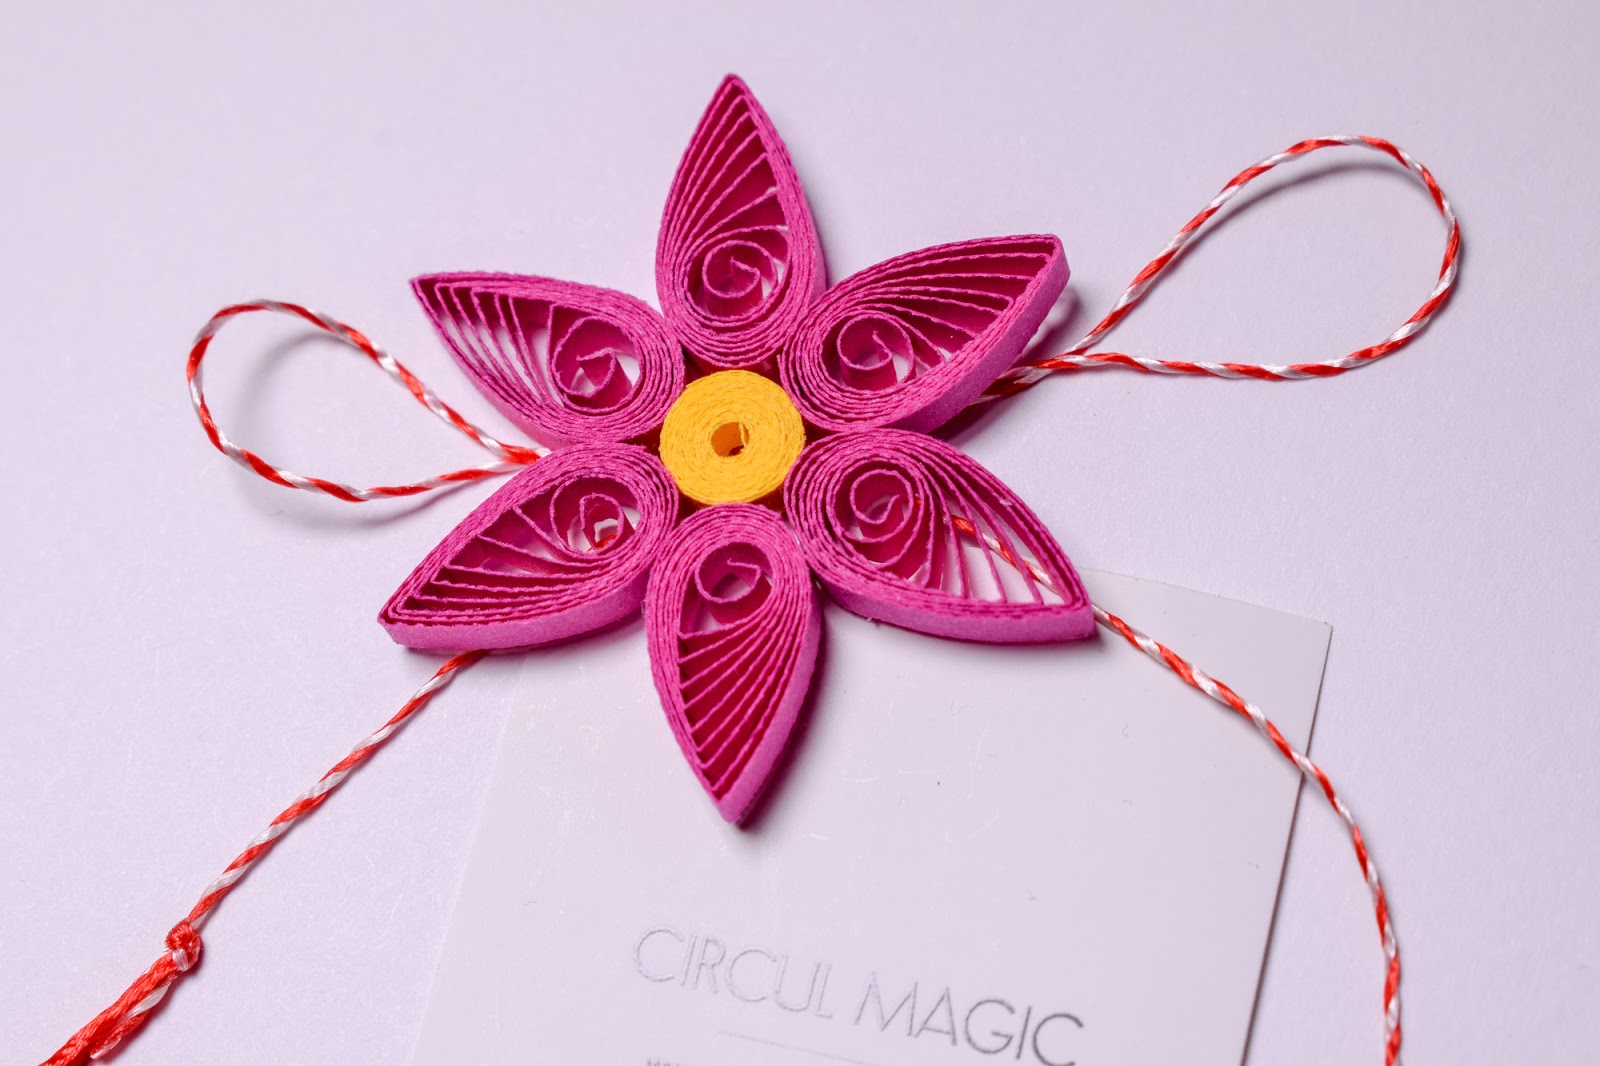 Martisoare Handmade 2018 Quilling - Circul Magic